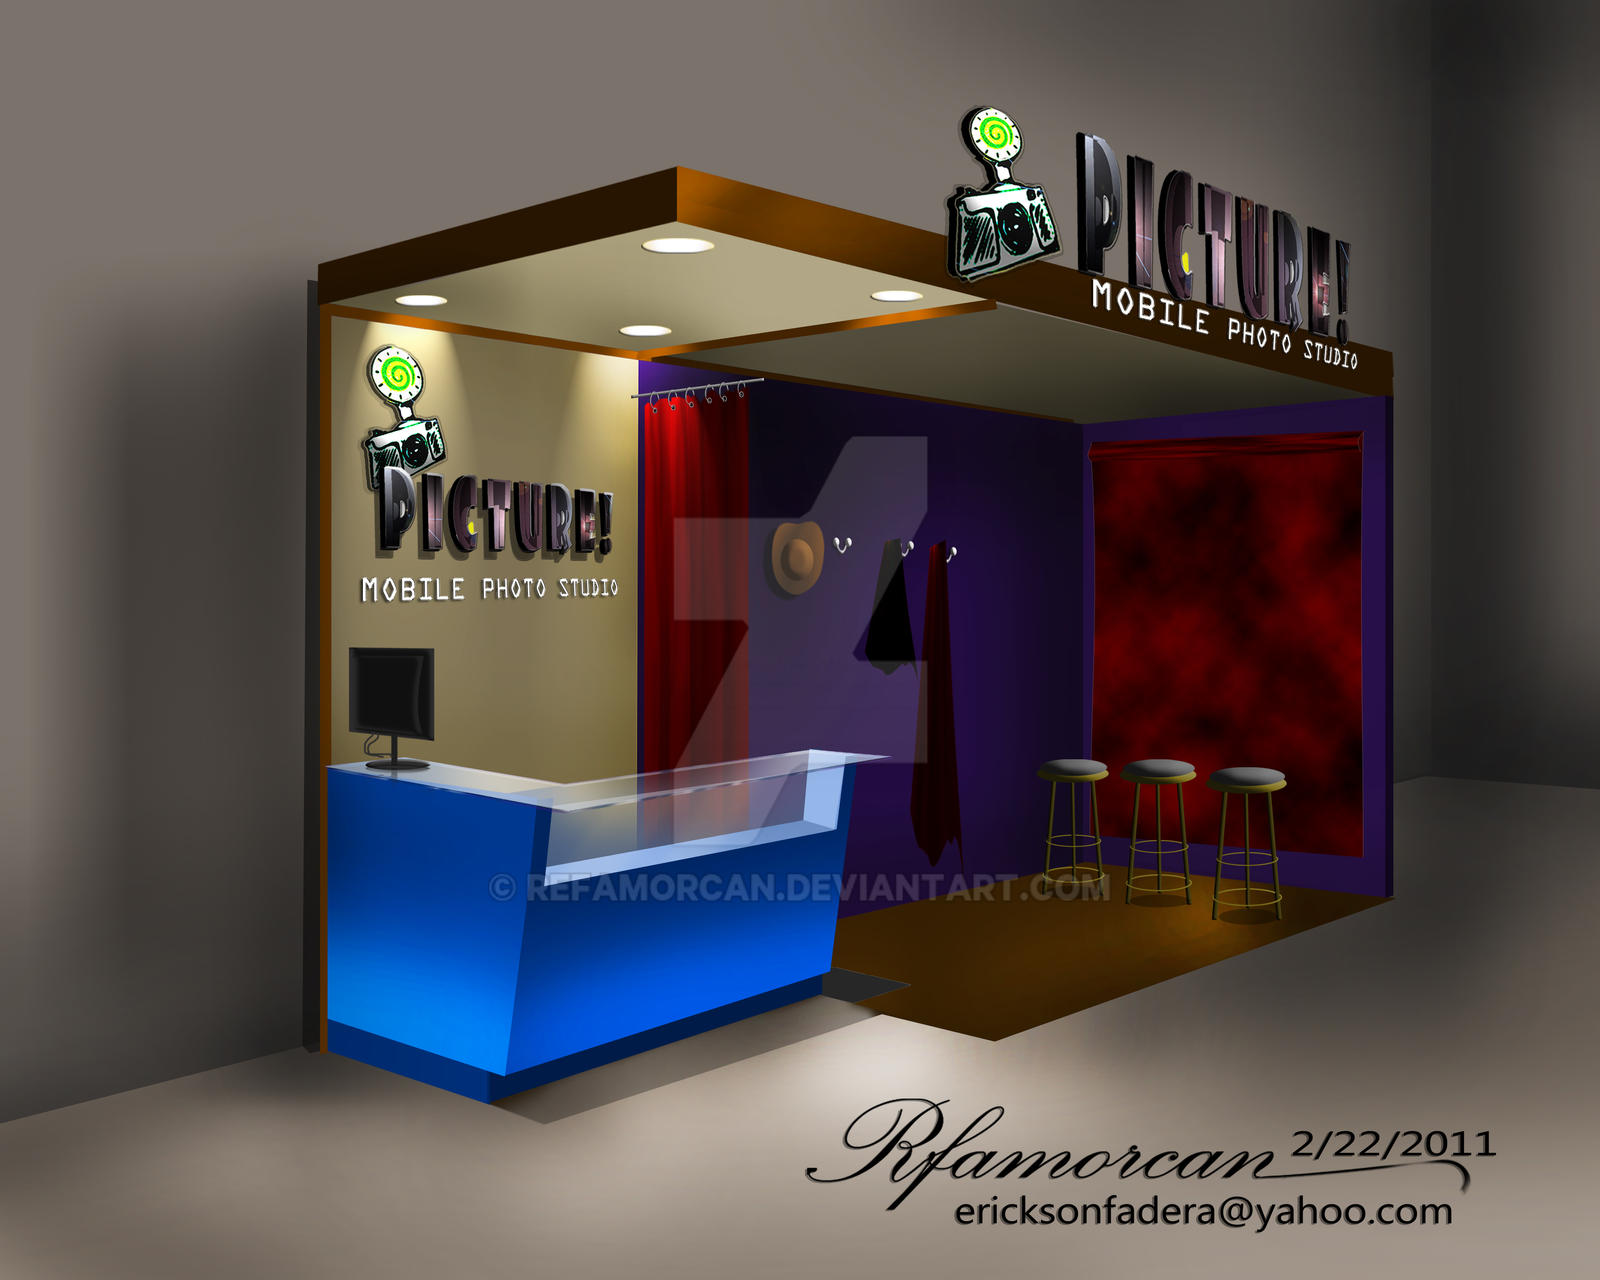 Lovely ... Photo Booth Design [interior] By Refamorcan